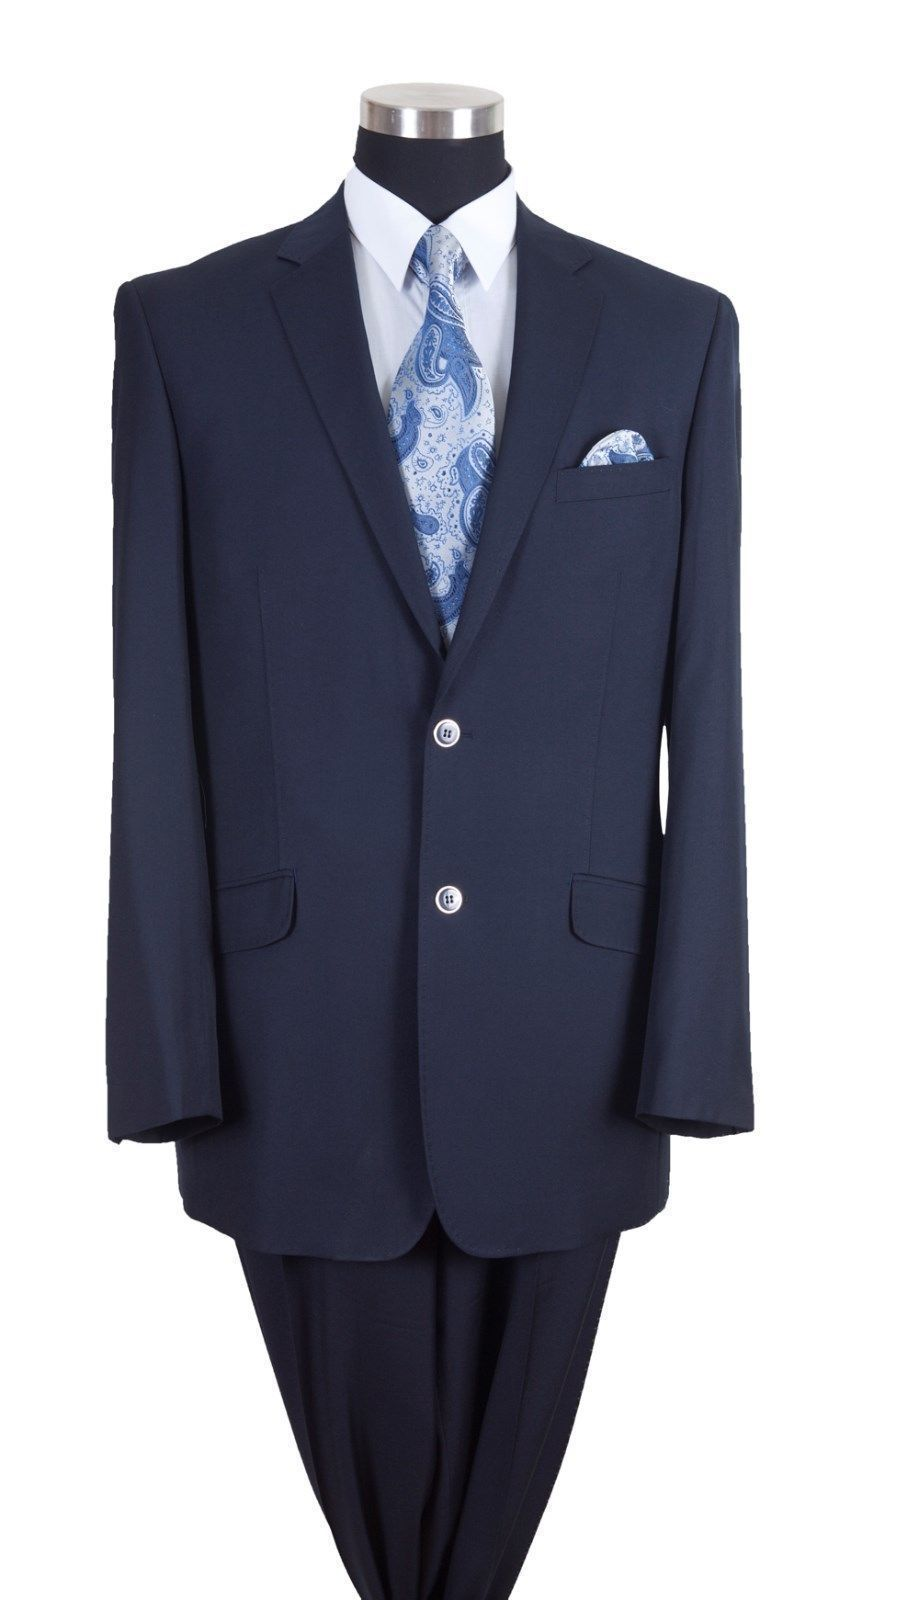 Milano Moda Men Suit 57026-Navy - Church Suits For Less